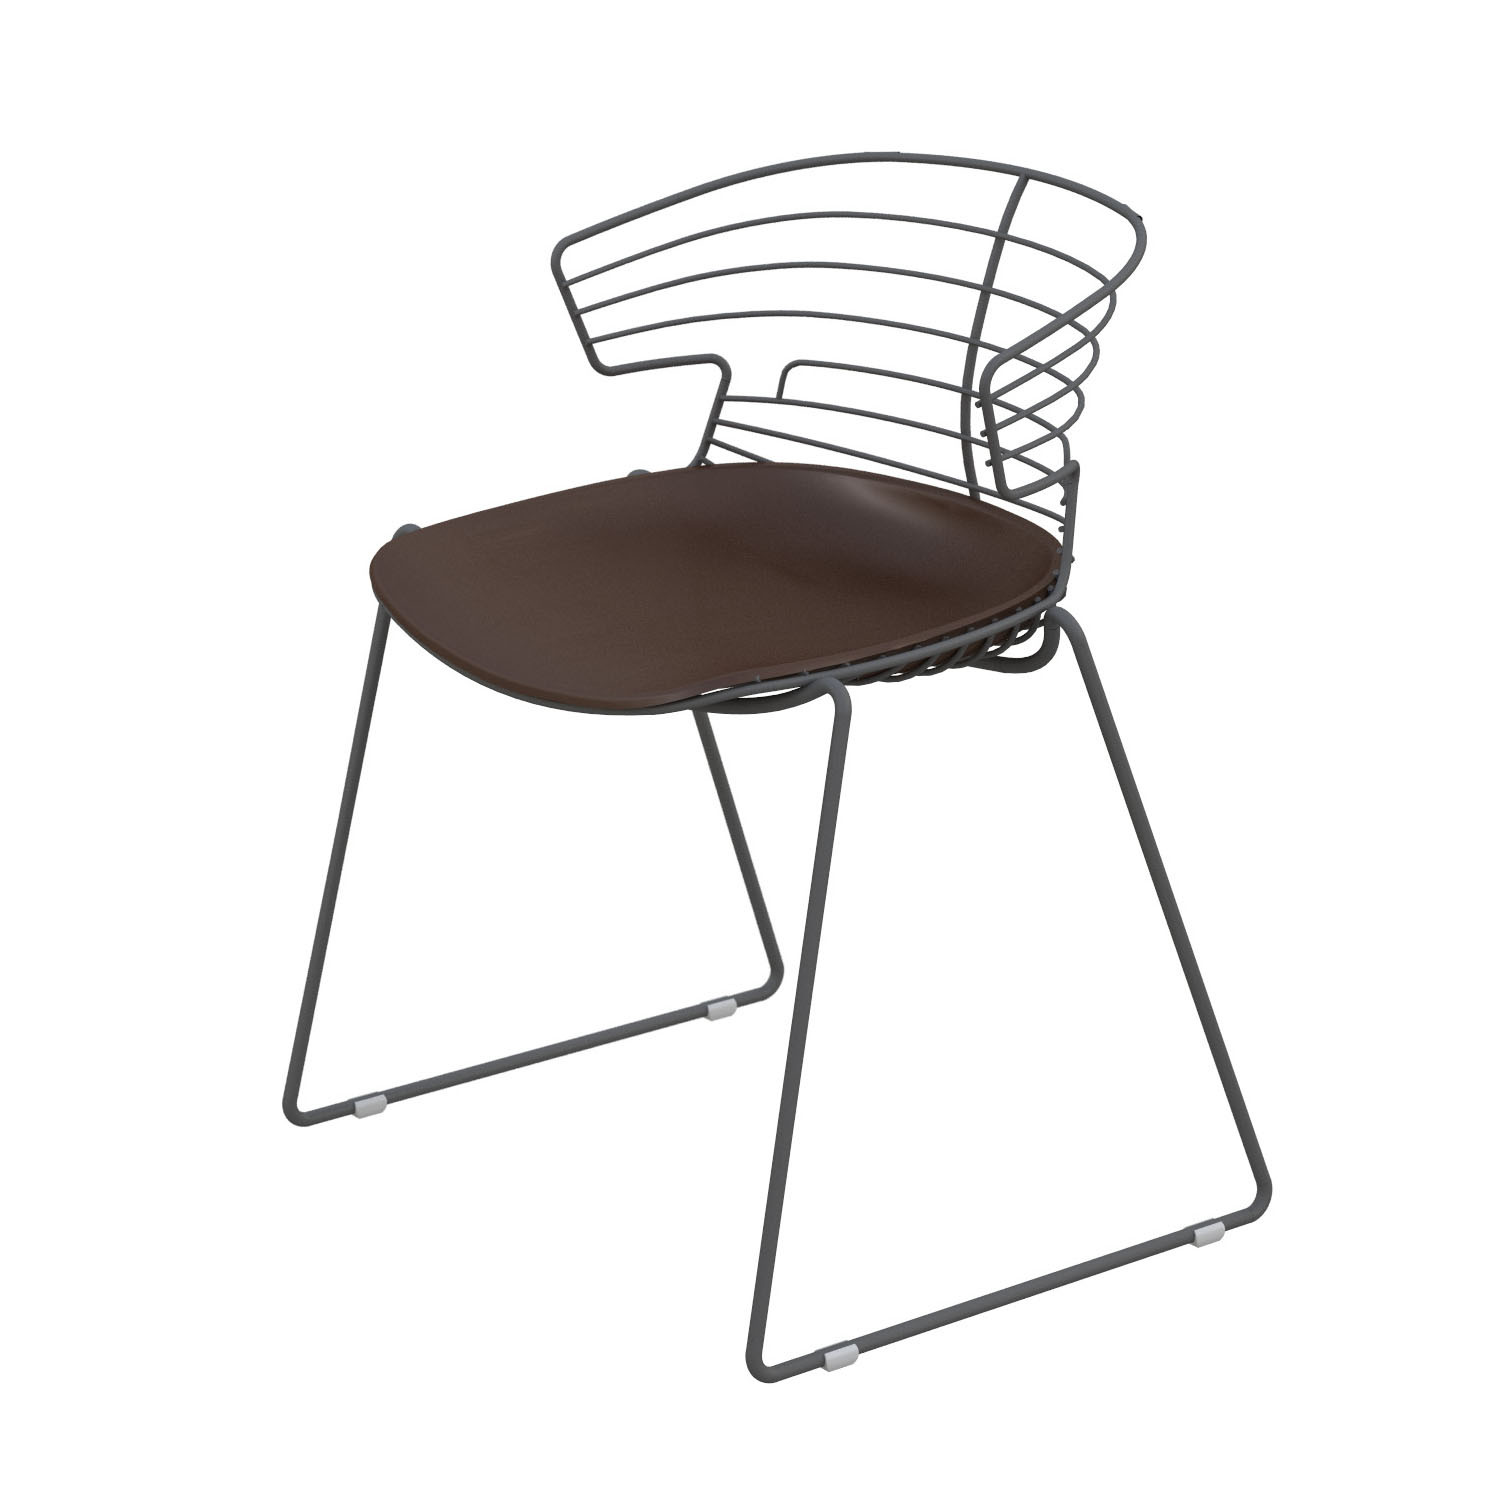 Cove Outdoor Chair With Seat Pad